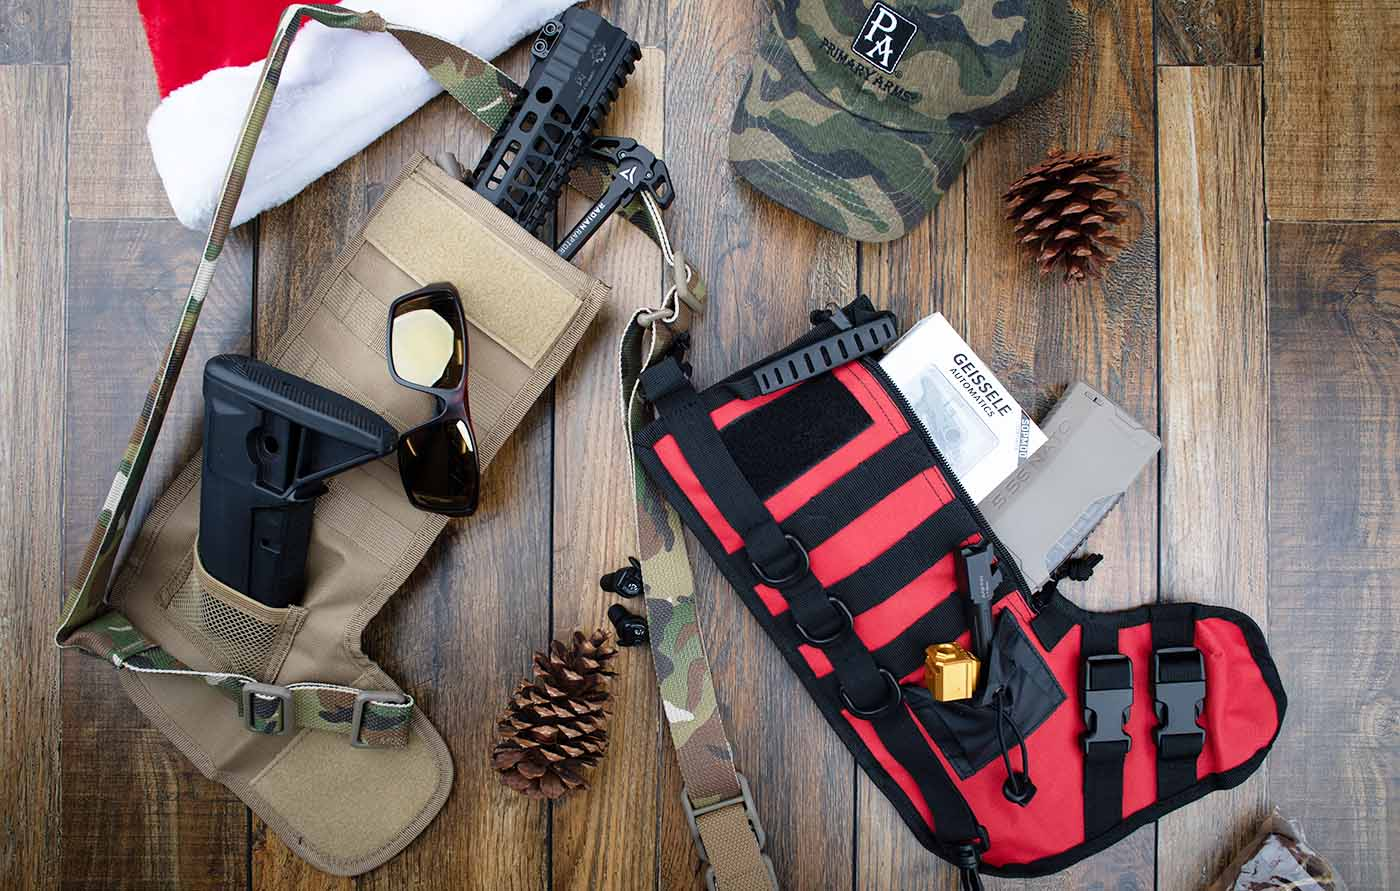 NcSTAR Tactical stockings add some tactical flair to your holiday.